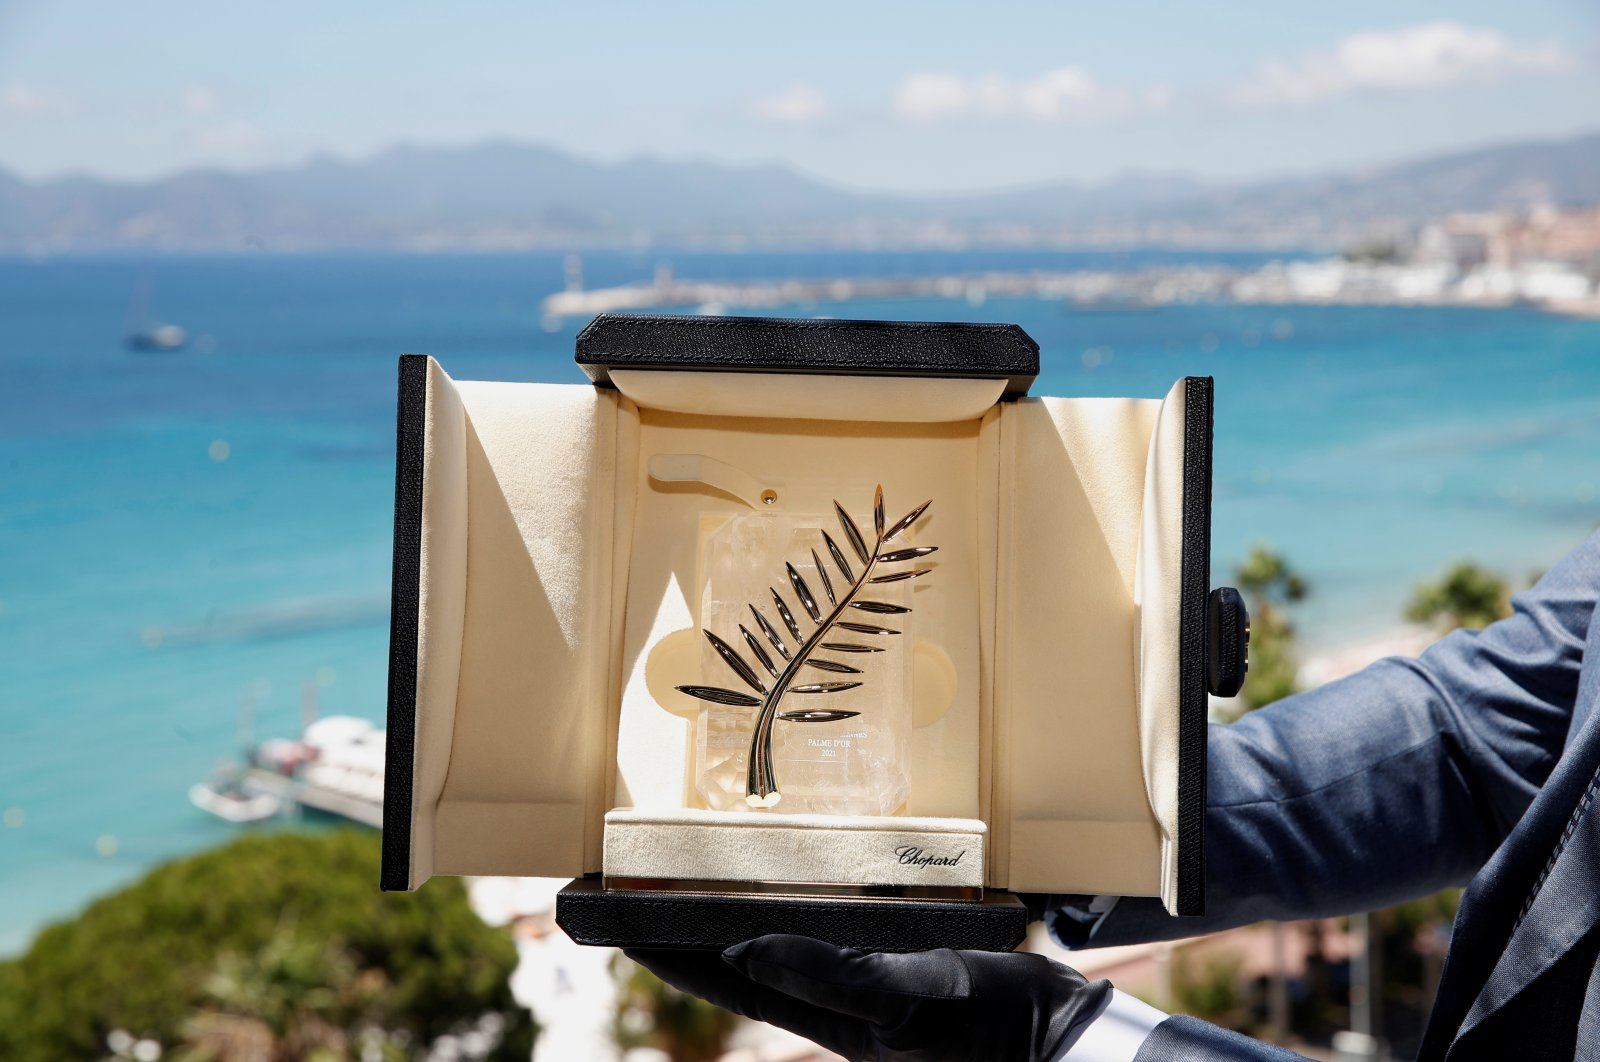 A Chopard representative displays the Palme d'Or, the highest prize awarded to competing films, during an interview before the start of film festival, Cannes, France, July 5, 2021. (Reuters Photo)